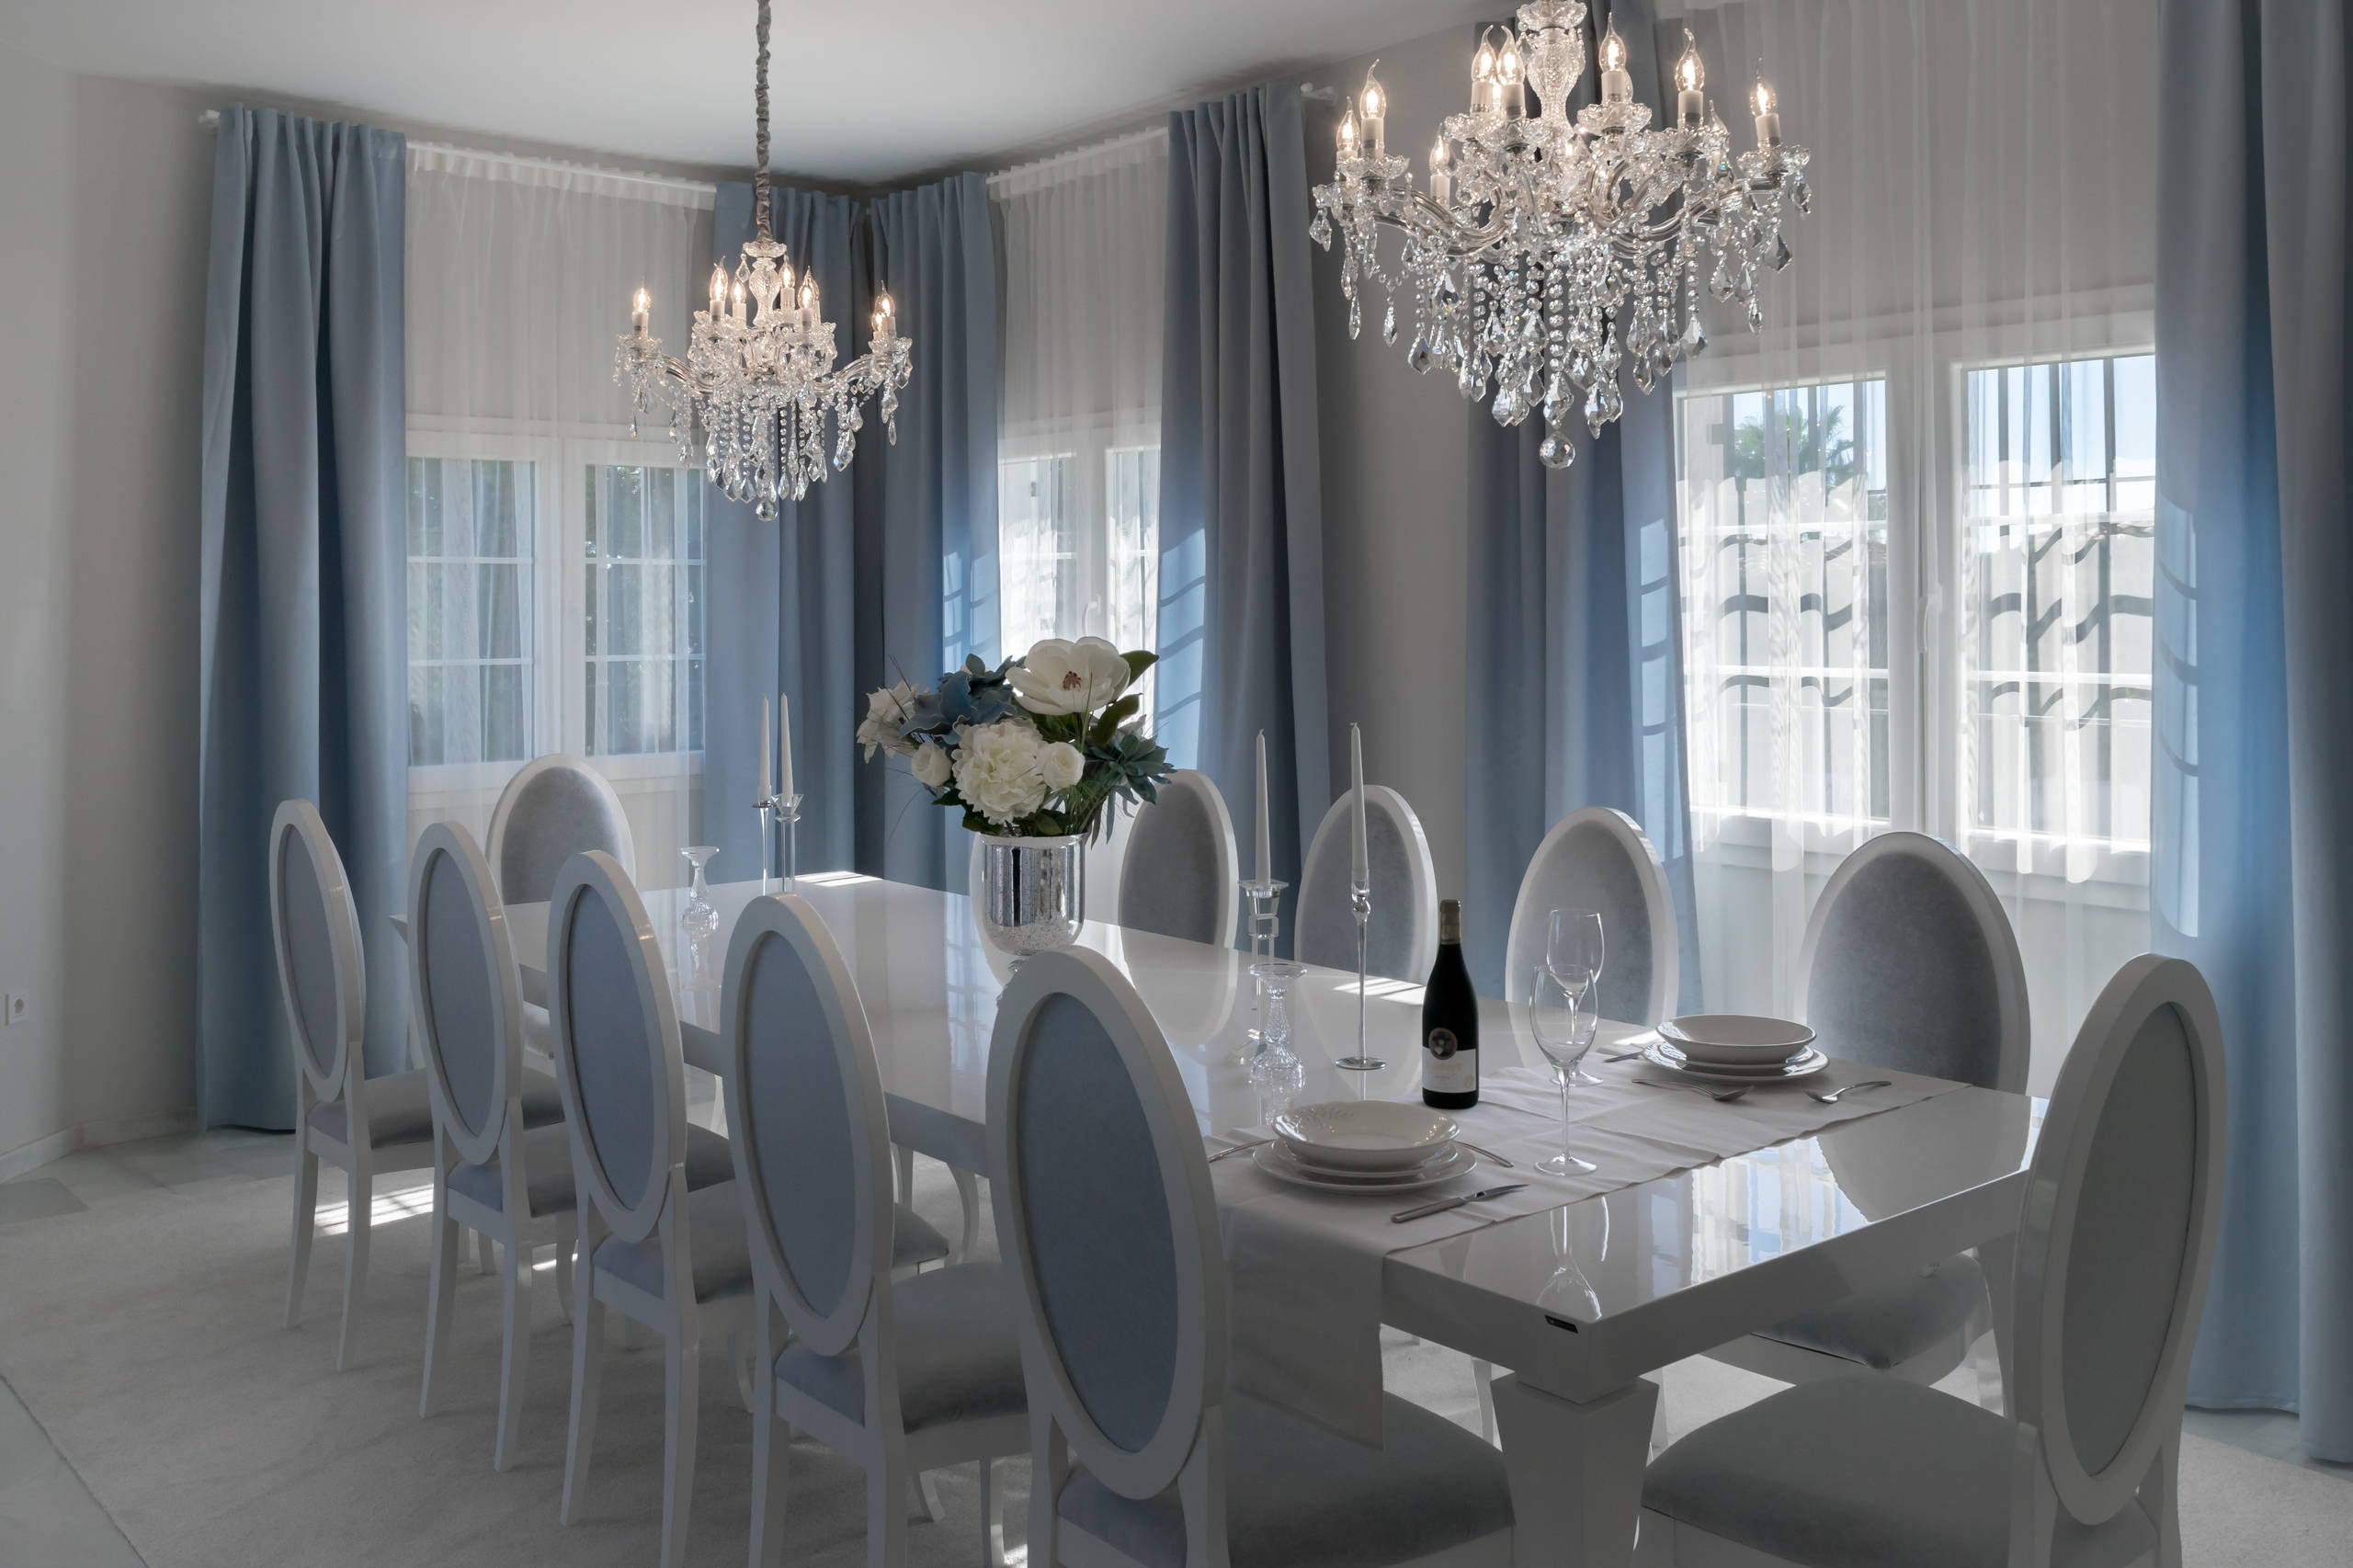 Large Dining Table Seats 12 14 People Ideas Photos Houzz